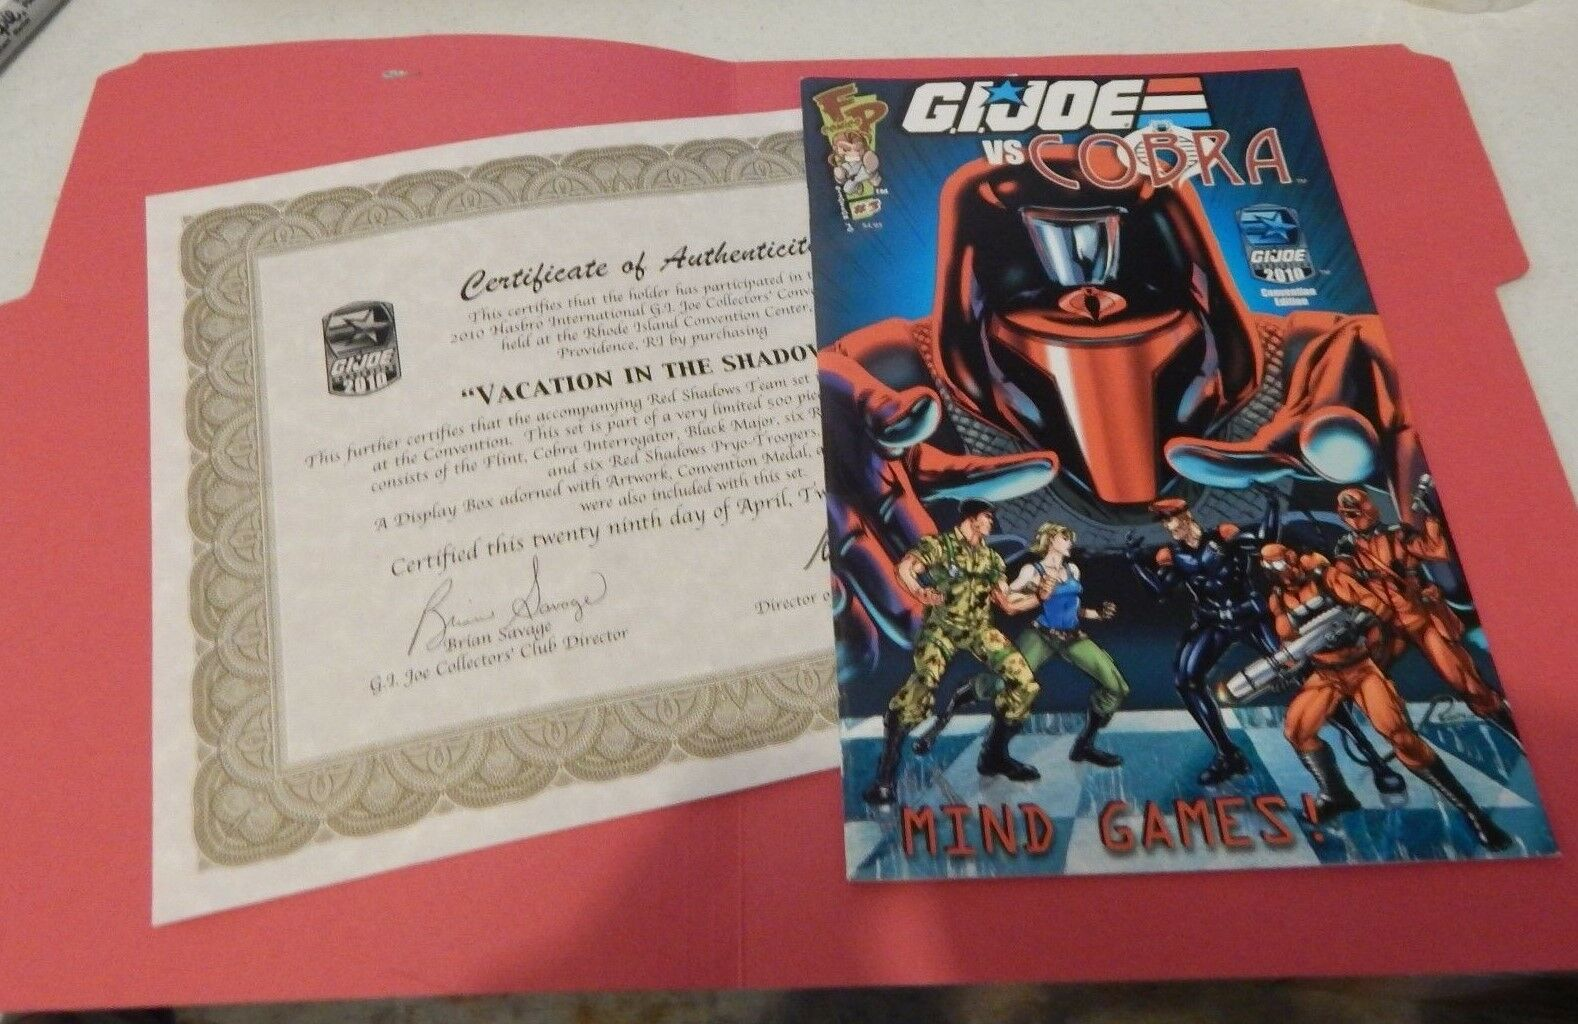 GI JOE  2010 COMIC & CERT OF AUTHENTICITY  VACATION IN THE SHADOWS JOECON